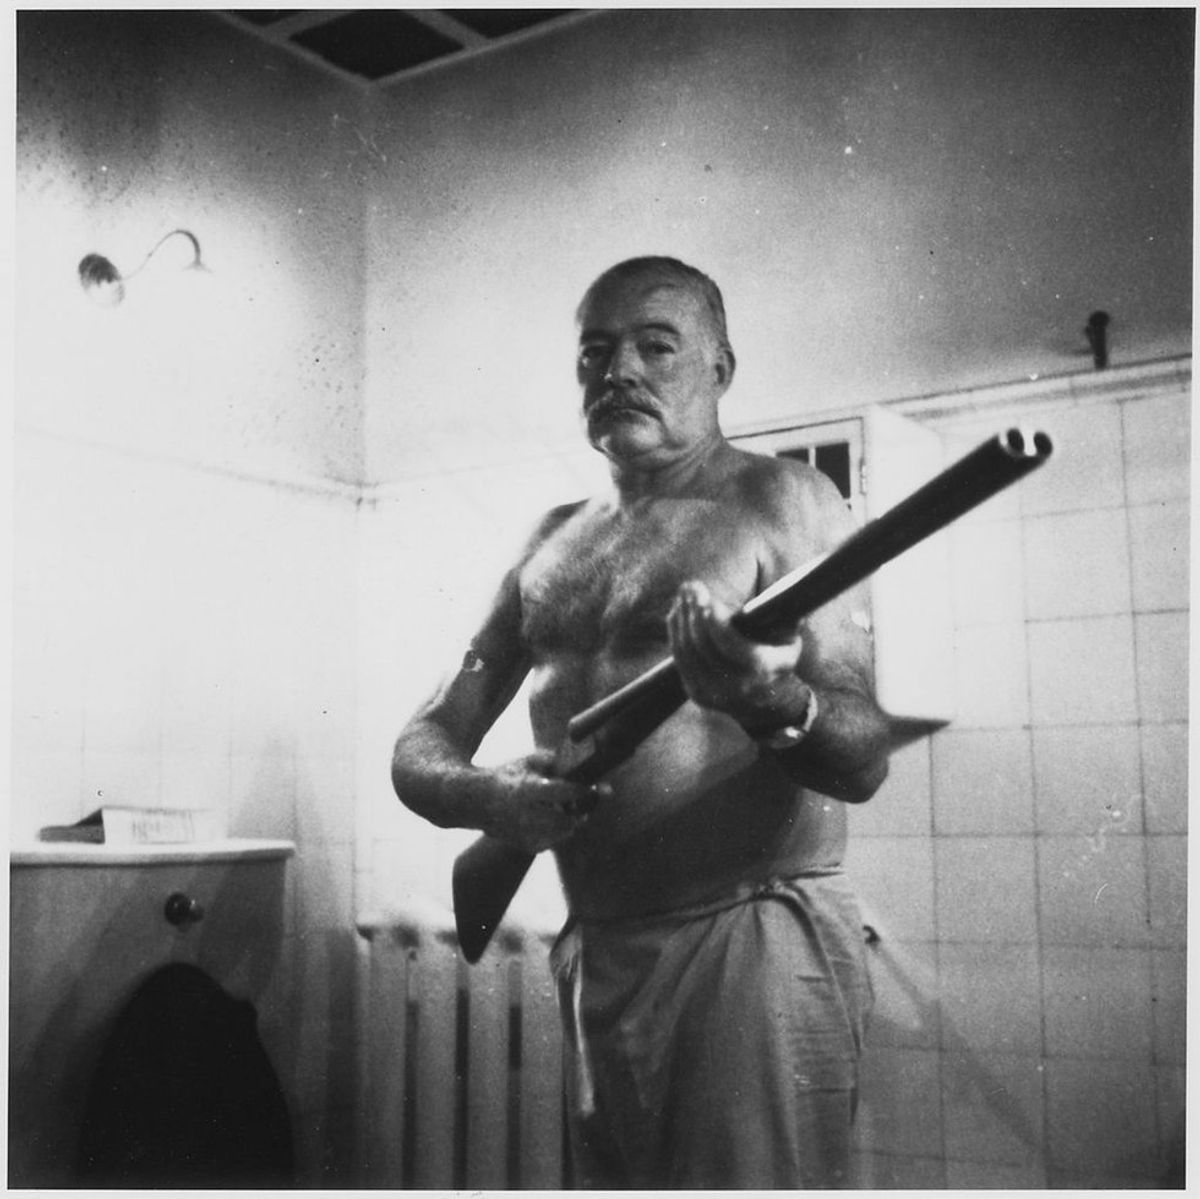 Ernest Hemingway: A Troubled Man And Enduring Legend